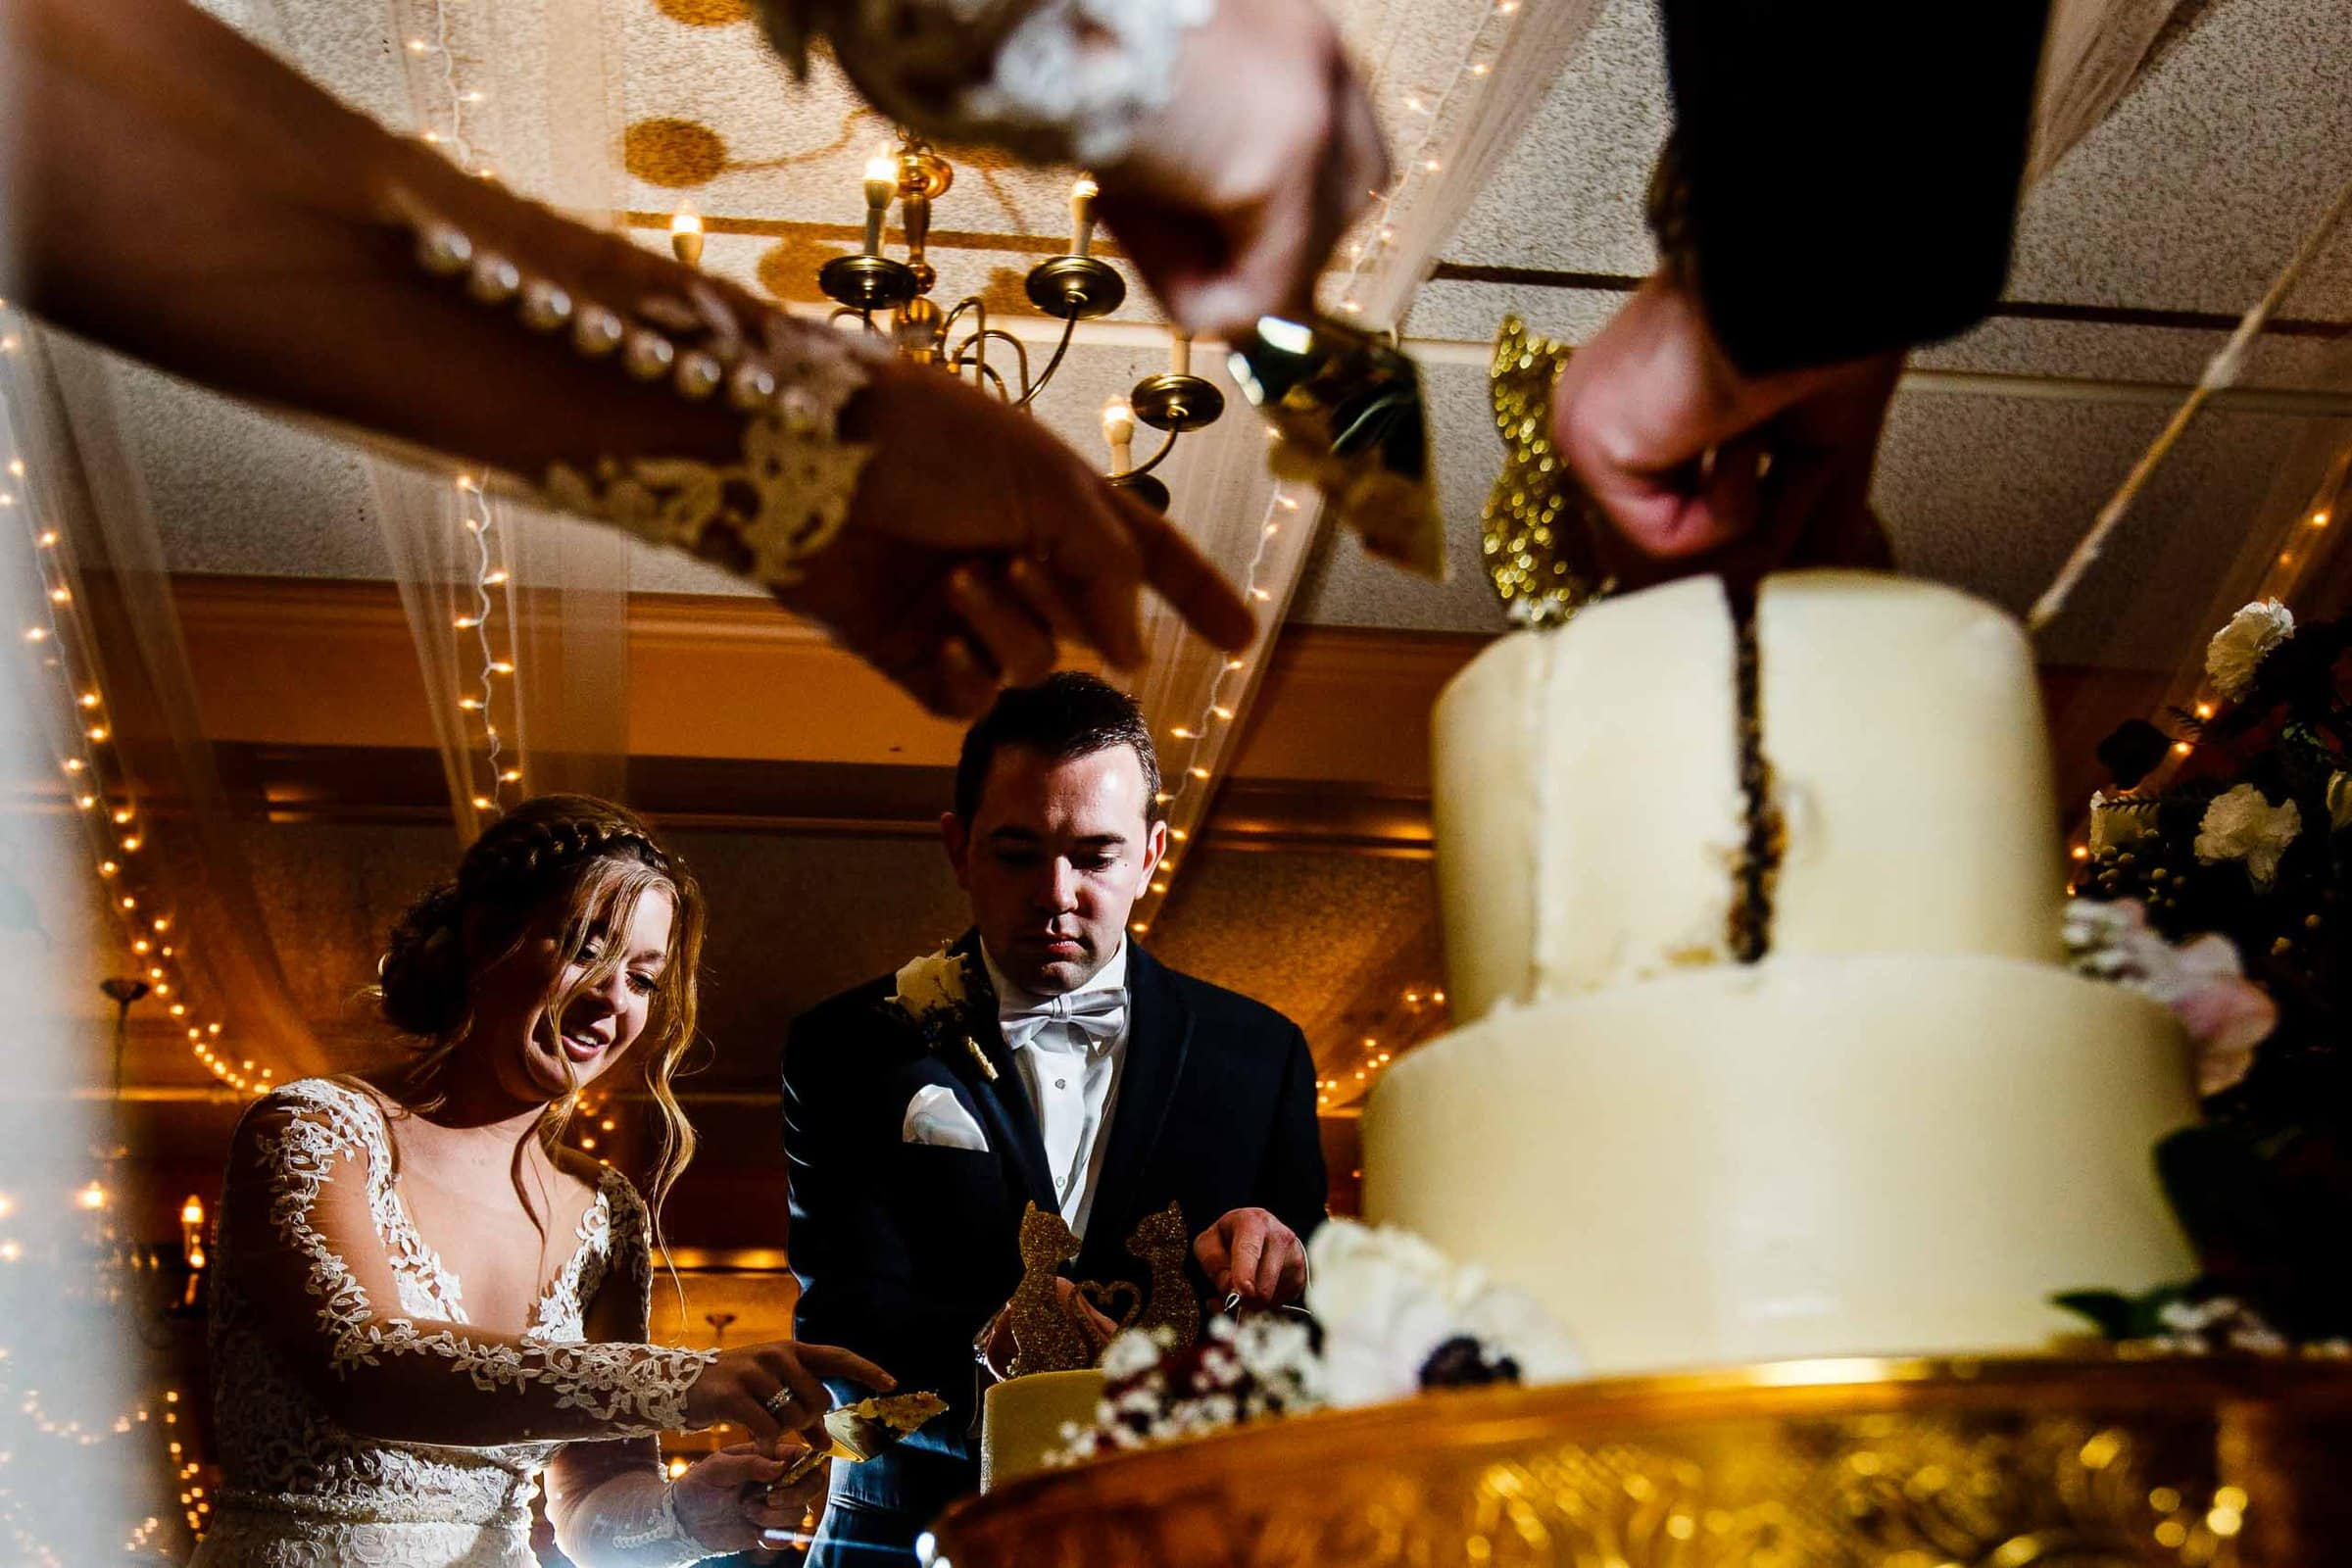 Bride and groom cutting their beautiful cake at their Columbia Gorge Hotel Wedding Reception